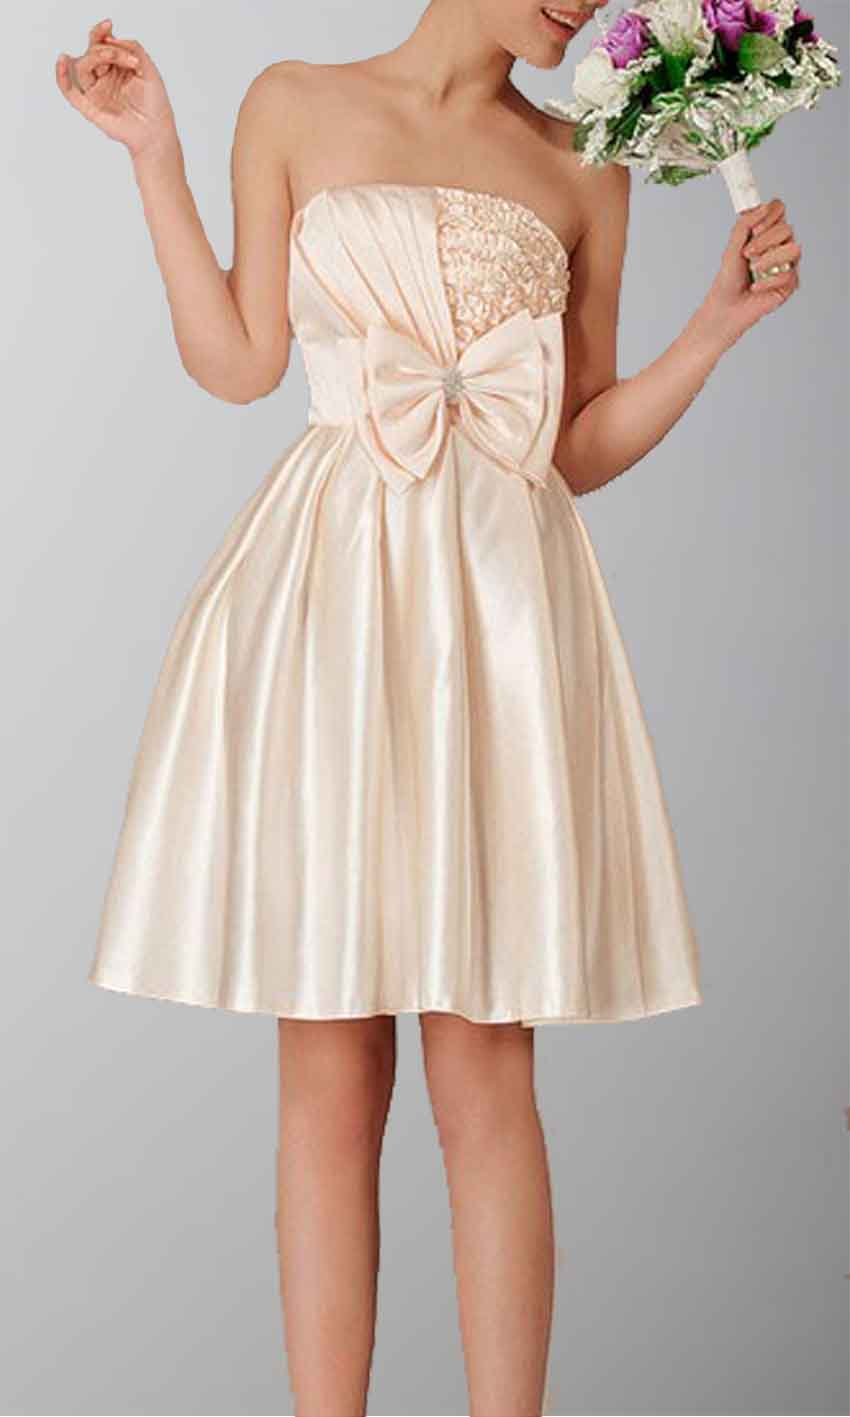 Unique Designed Bowknot Umbellate Dress For Family Party KSP024 [KSP024] - £88.00 : Cheap Prom Dresses Uk, Bridesmaid Dresses, 2014 Prom & Evening Dresses, Look for cheap elegant prom dresses 2014, cocktail gowns, or dresses for special occasions? kissprom.co.uk offers various bridesmaid dresses, evening dress, free shipping to UK etc.